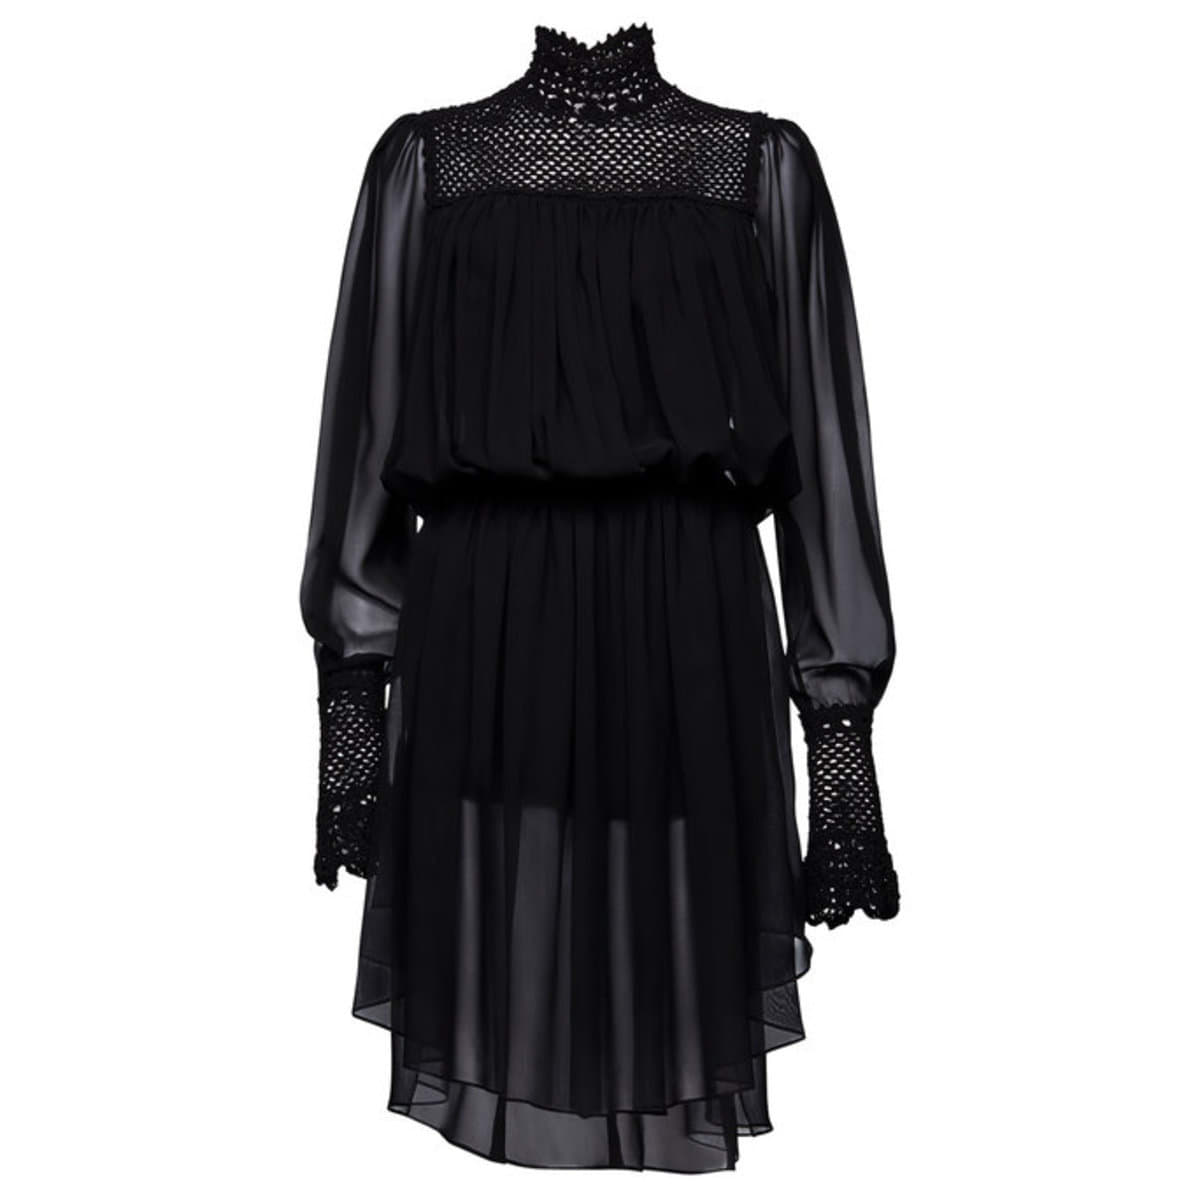 101016-Gothic-Dresses-Embed1